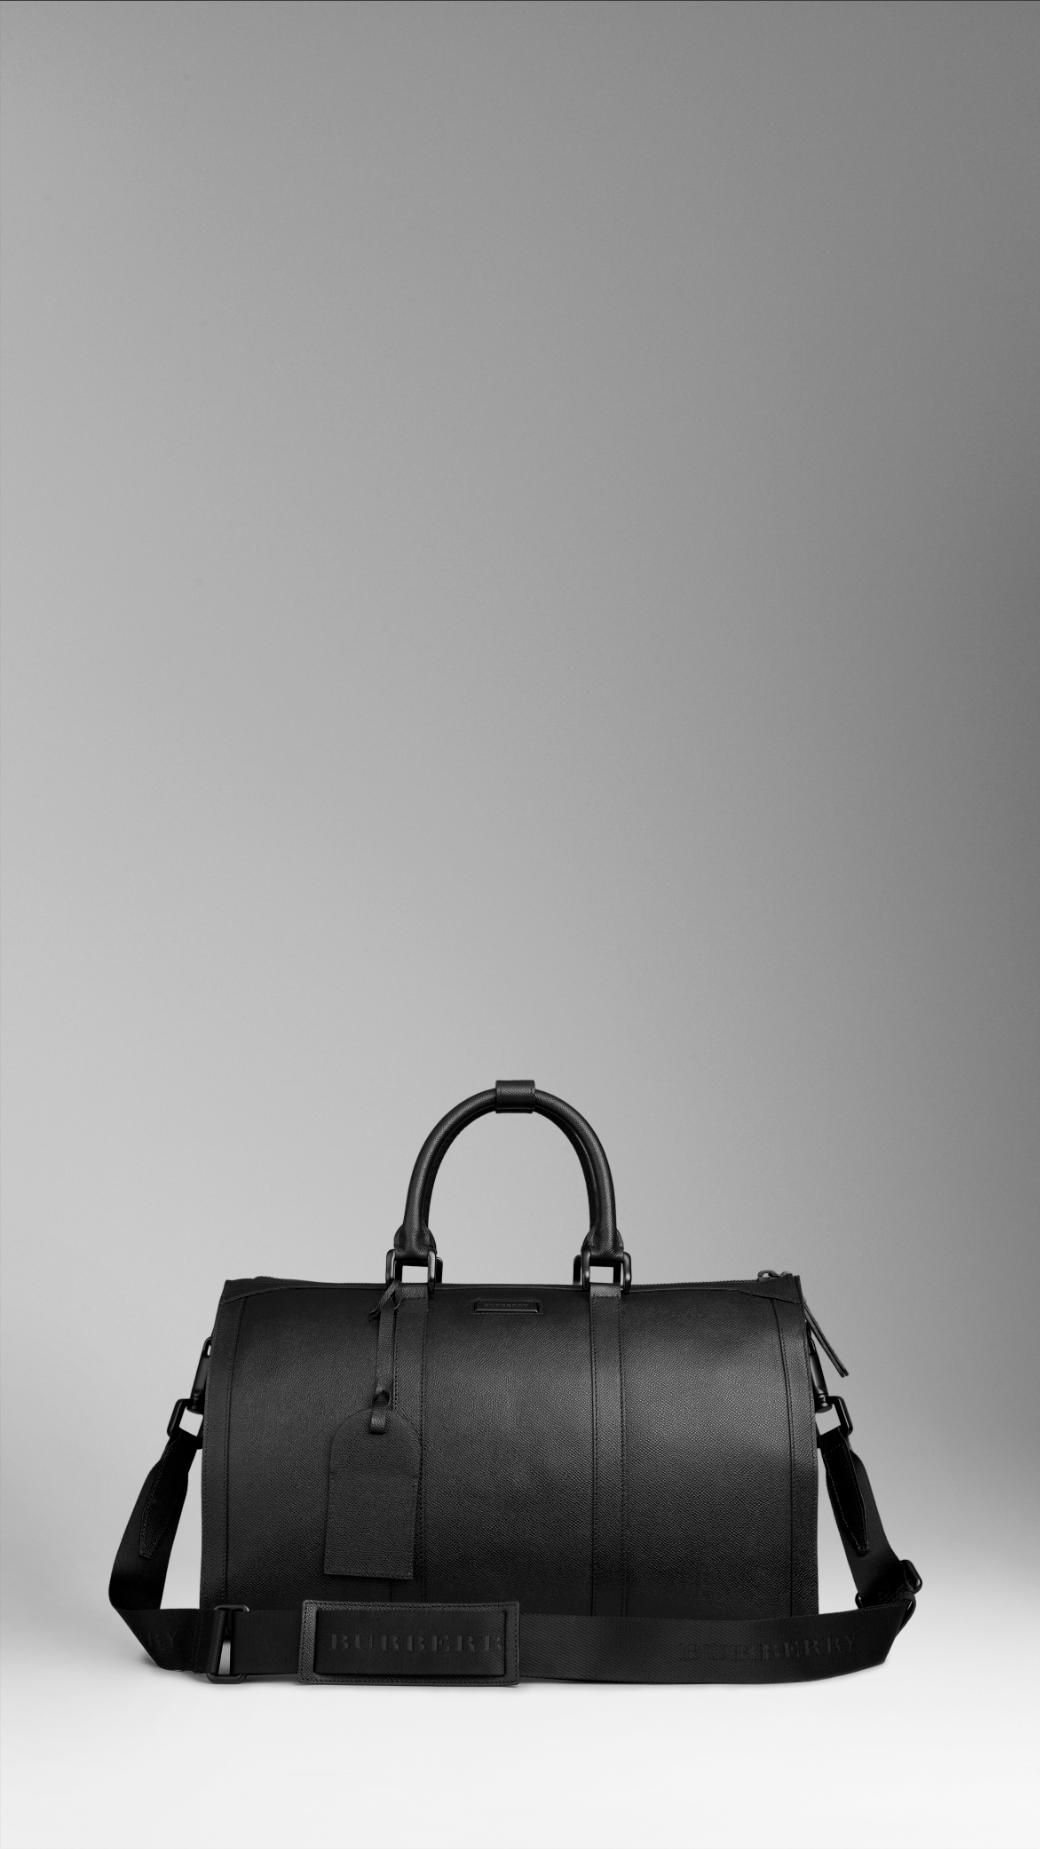 Burberry leather duffle bag   Travel Bags   Pinterest   Bags, Travel ... 39ff20412a